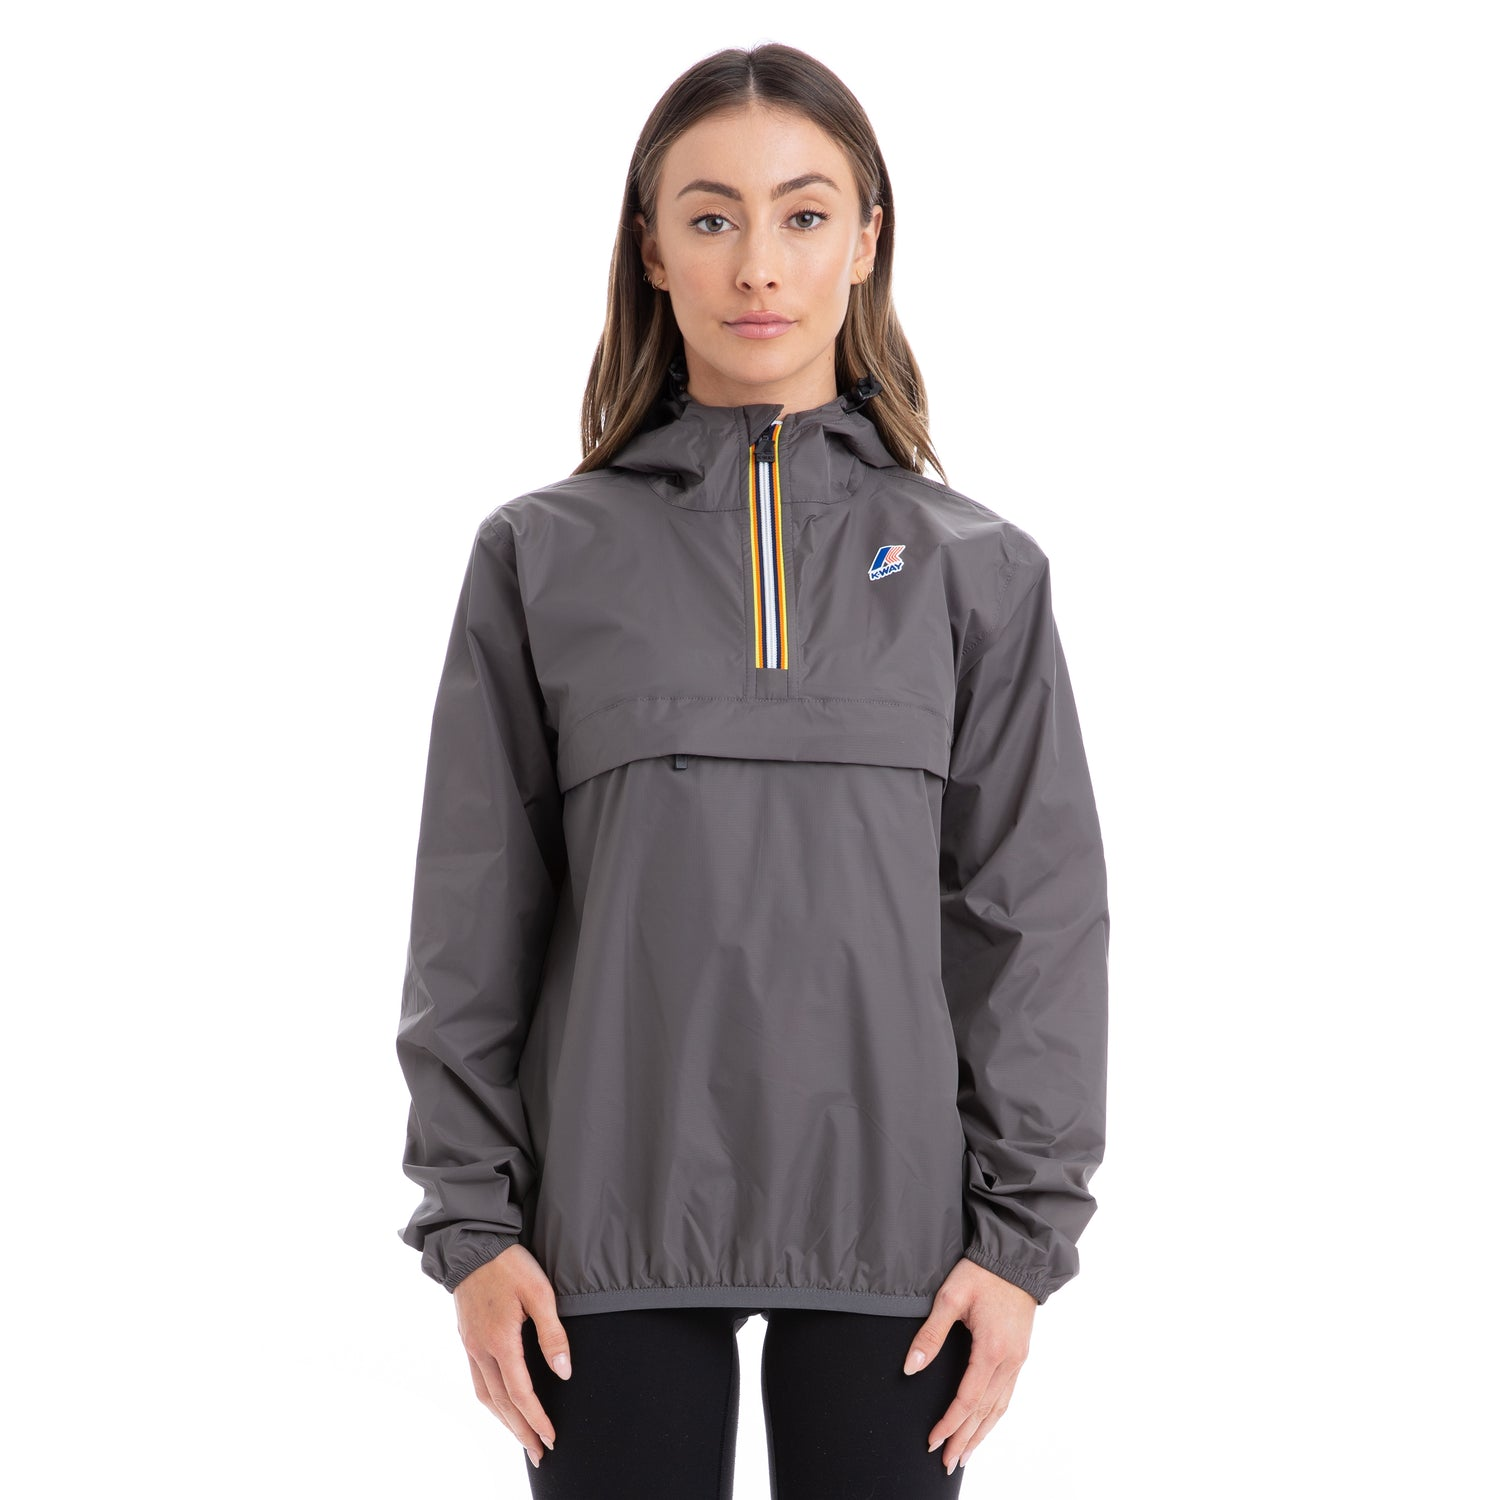 K-Way Women's Le Vrai 3.0 Leon Half Zip Jacket Grey Smoke